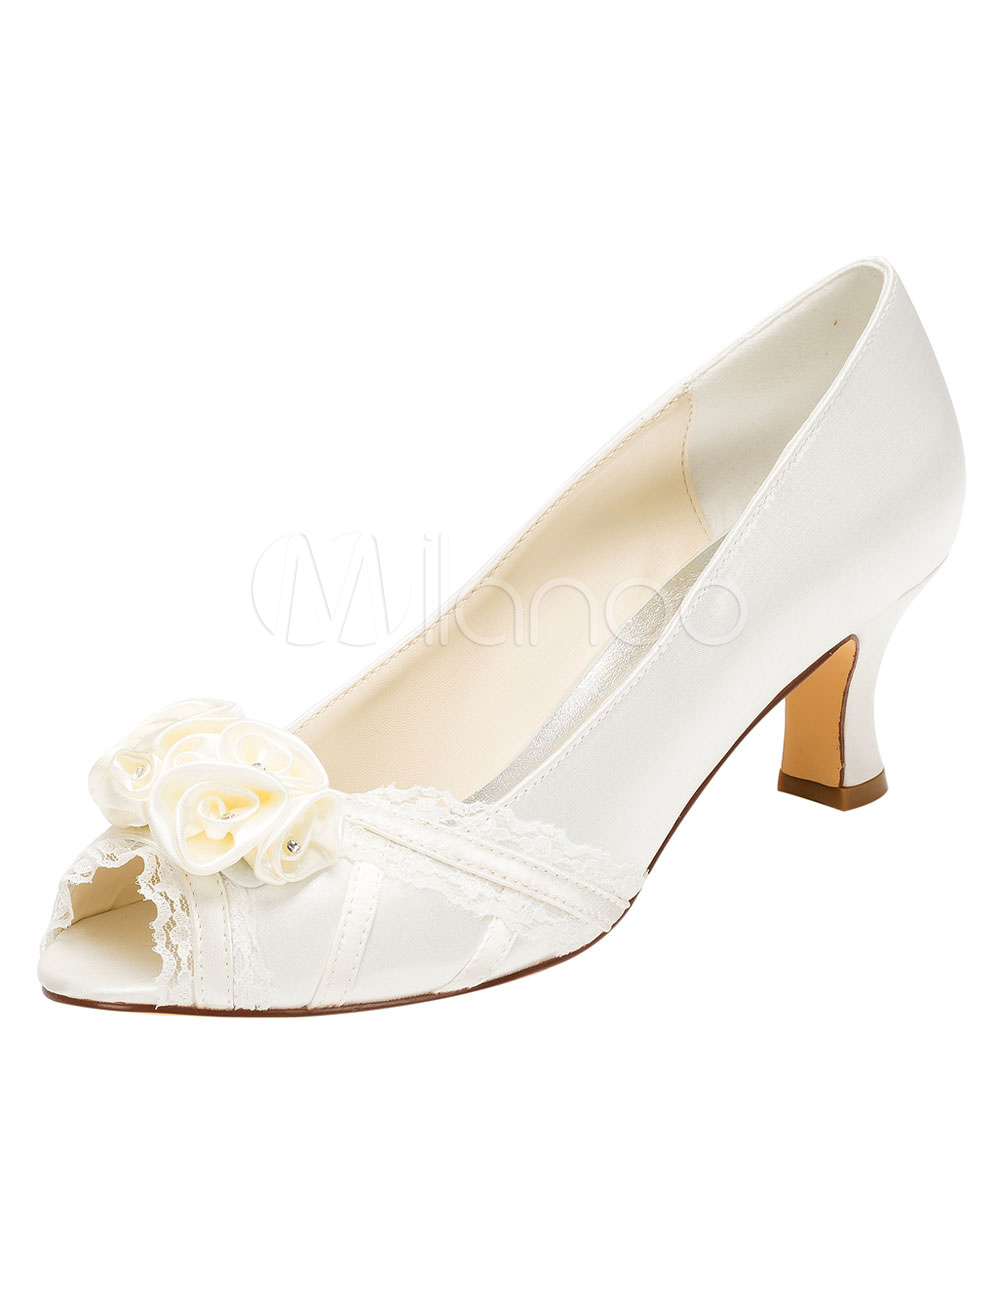 Ivory Wedding Shoes Peep High Heel Lace Satin Flower Slip-on Bridal Shoes